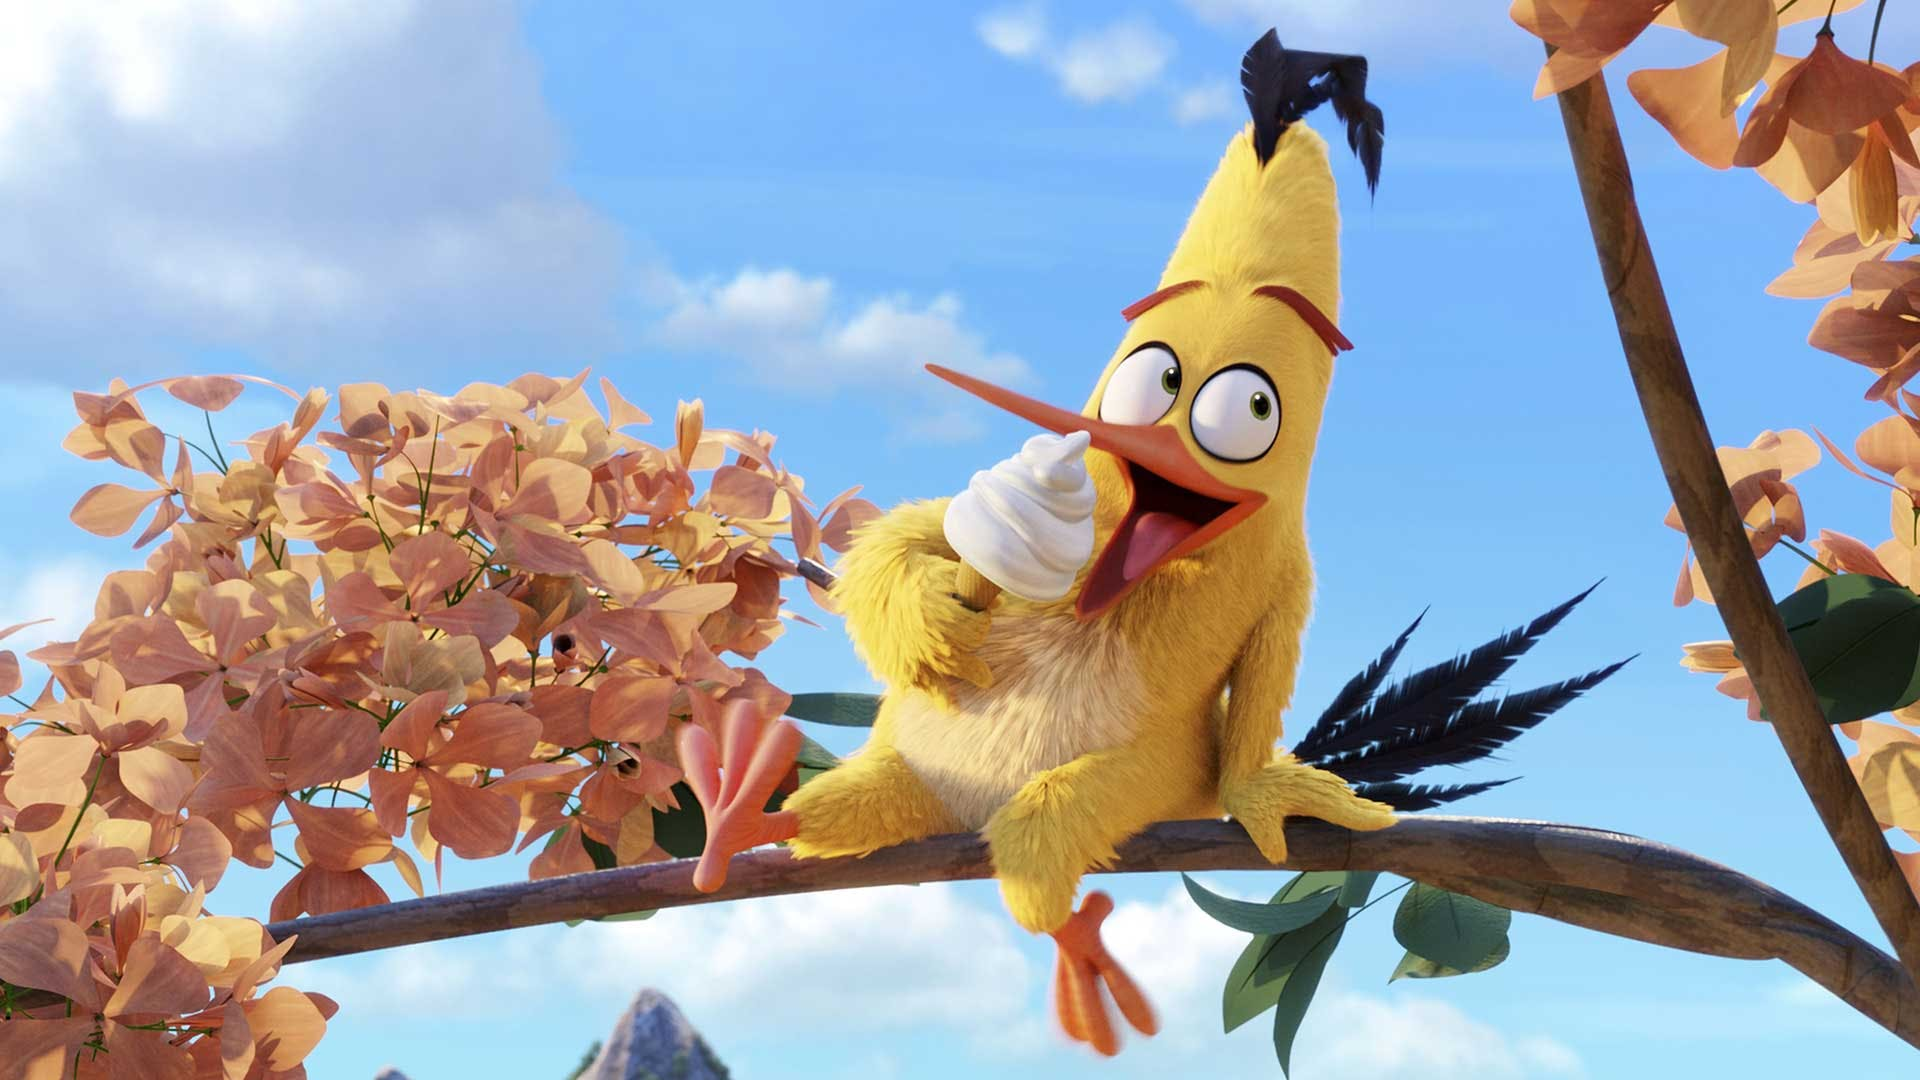 Chuck from Angry Birds